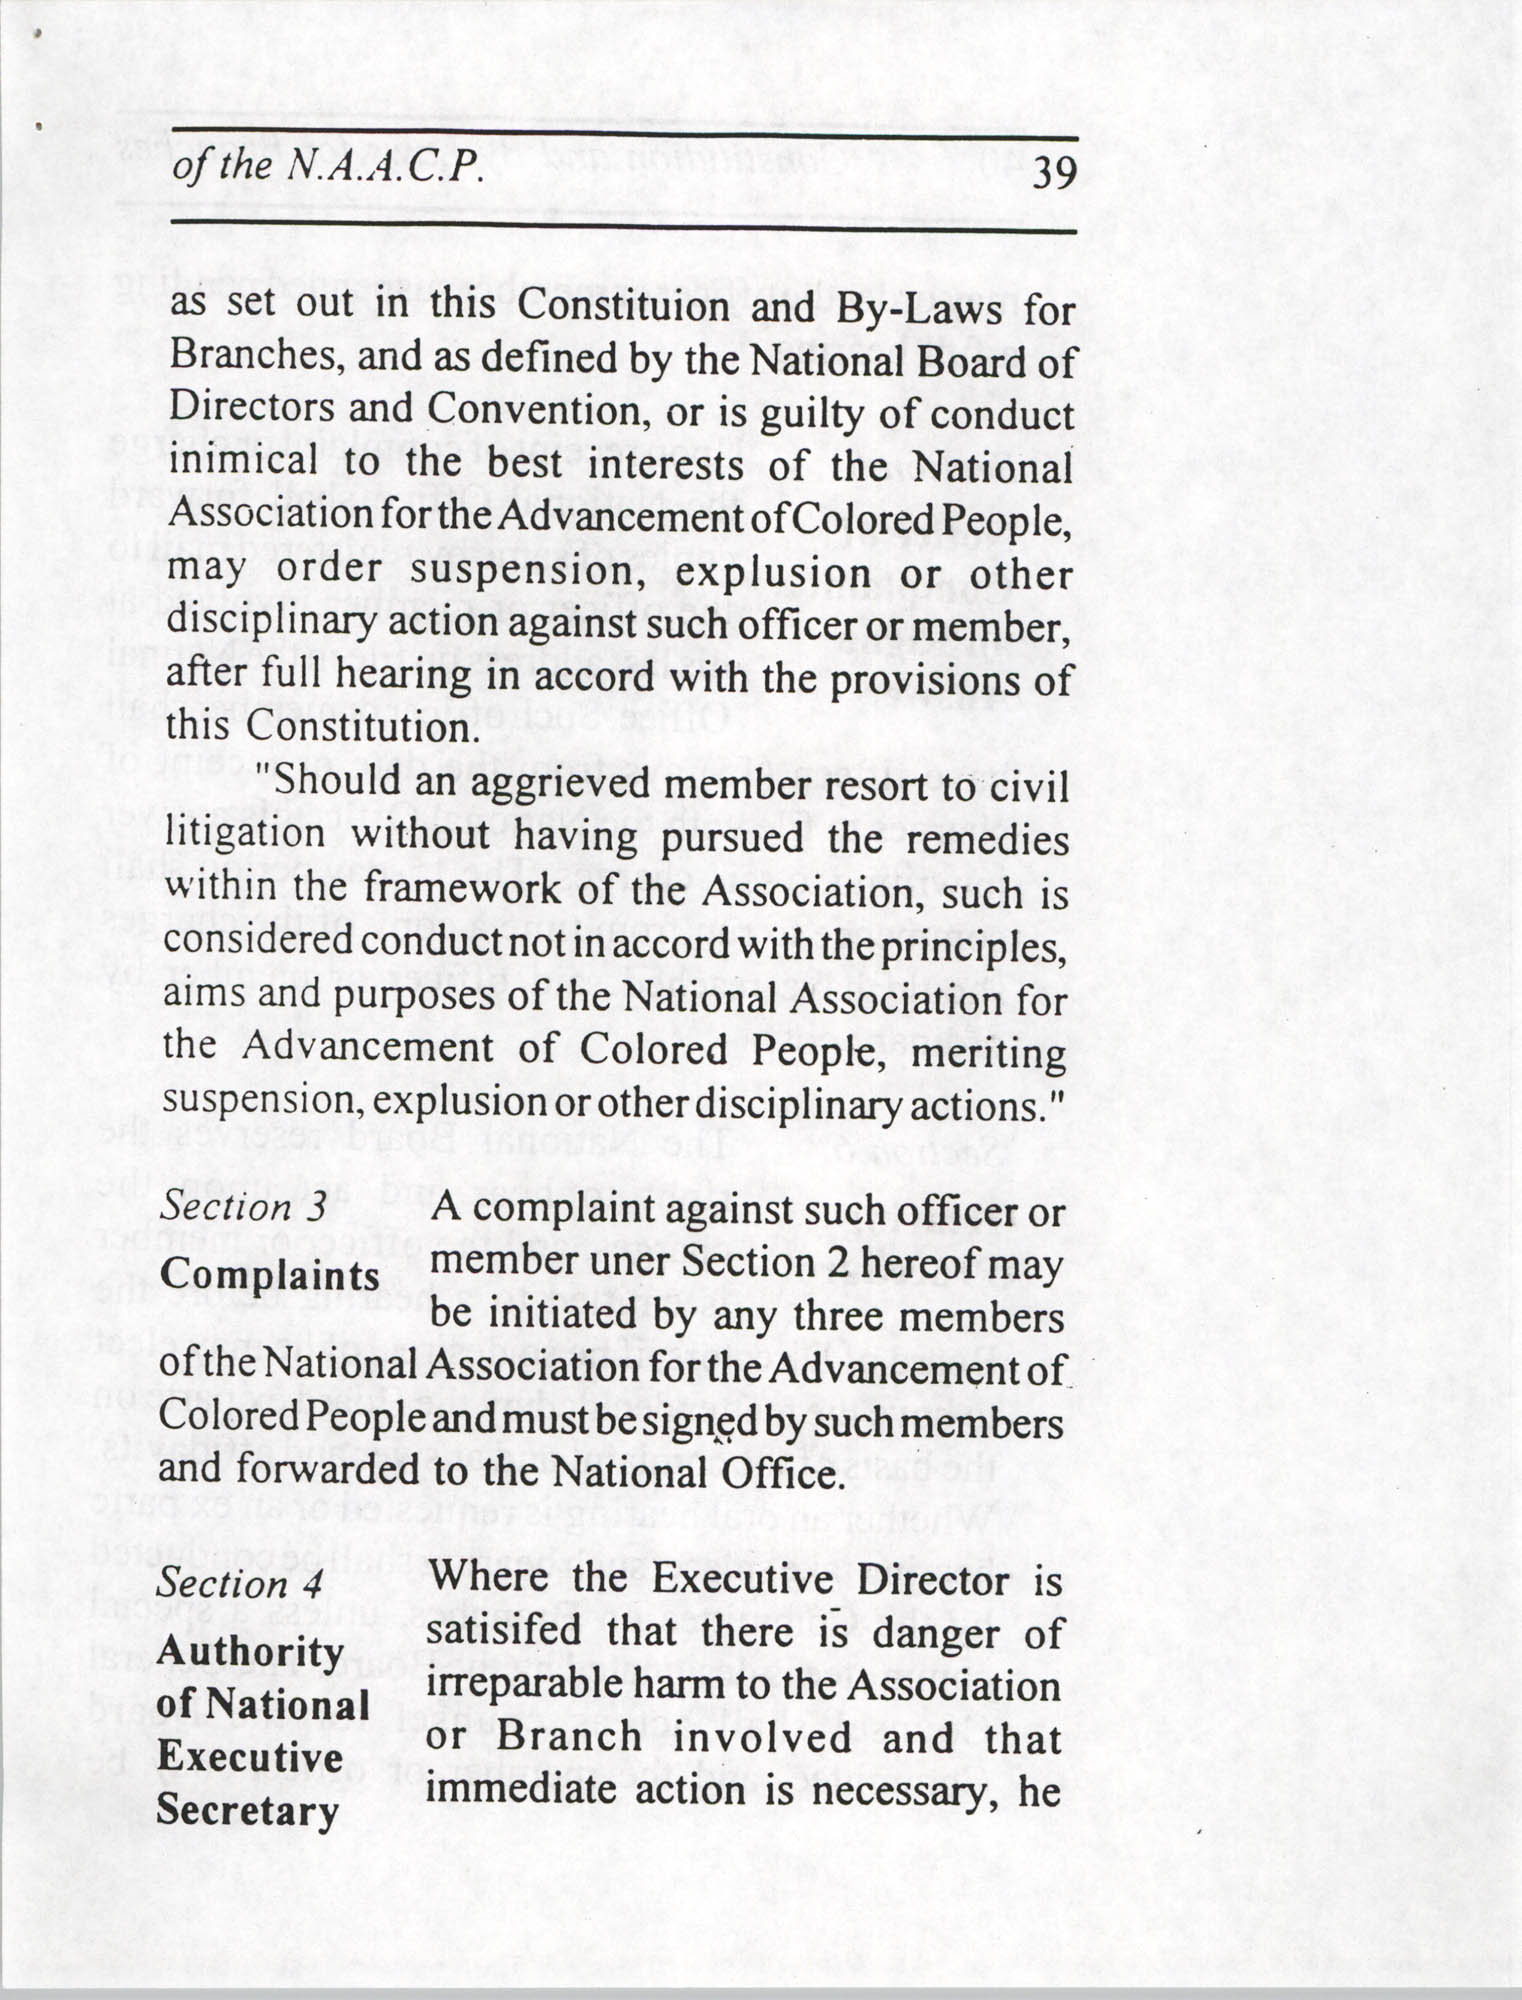 Constitution and By-Laws for Branches of the NAACP, July 1994, Page 39